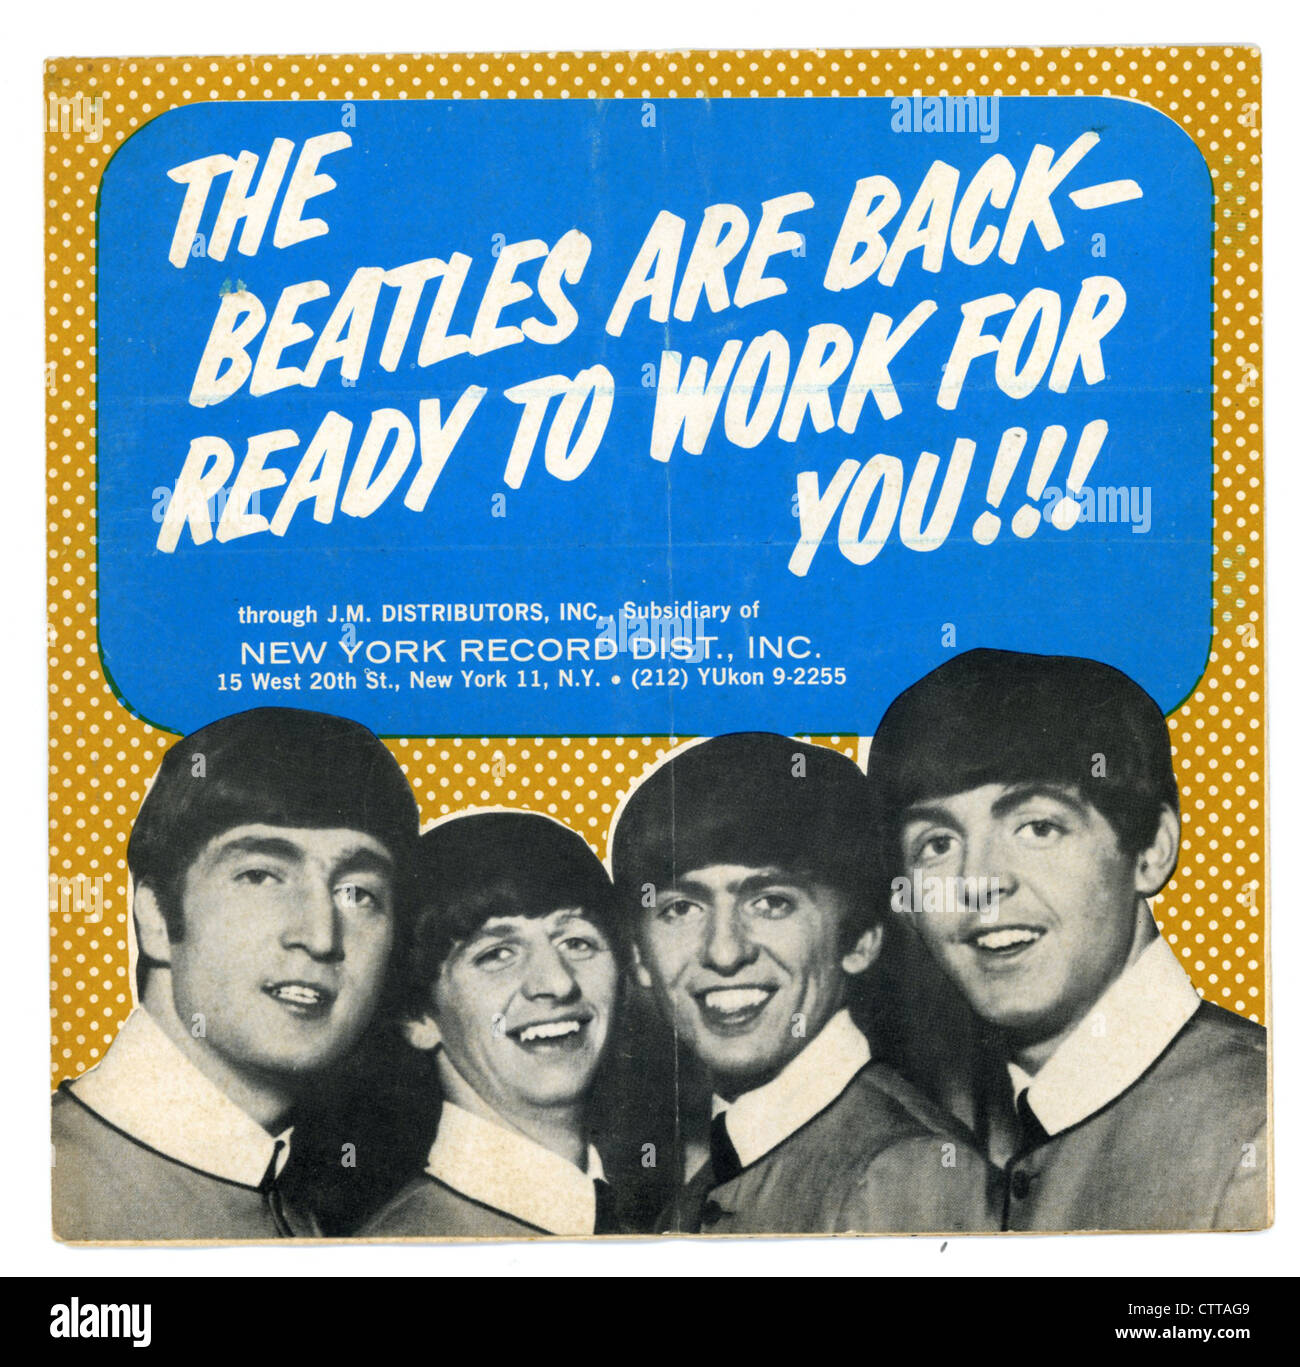 000919 - The Beatles JM Distributors 1964 Flyer - Stock Image